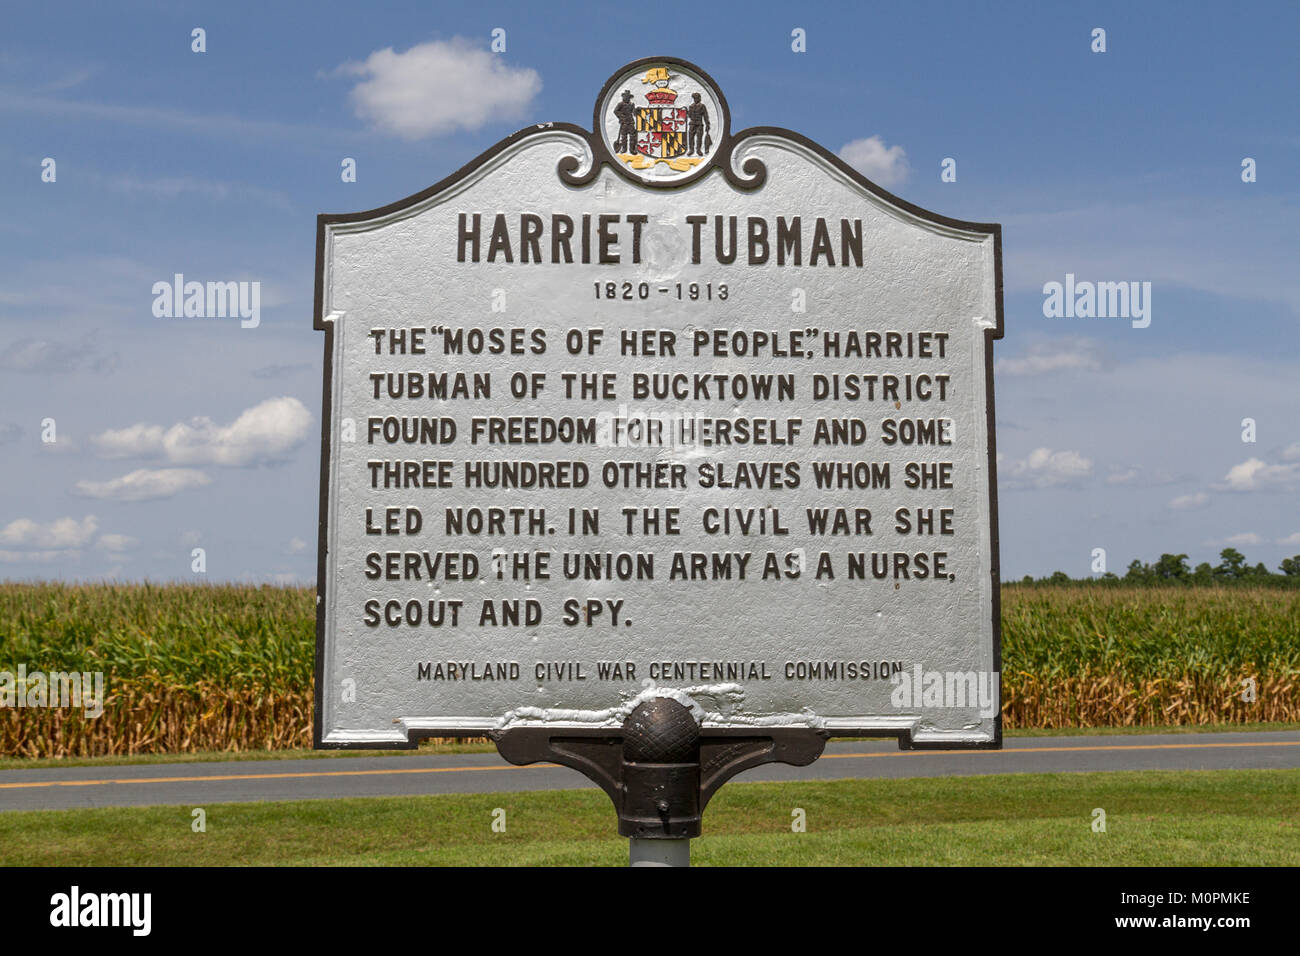 harriet tubman moses of her people Harriet tubman, the moses of her people: the life and work of harriet tubman - kindle edition by sarah h bradford download it once and read it on your kindle device, pc, phones or tablets use features like bookmarks, note taking and highlighting while reading harriet tubman, the moses of her people: the life and work of harriet tubman.